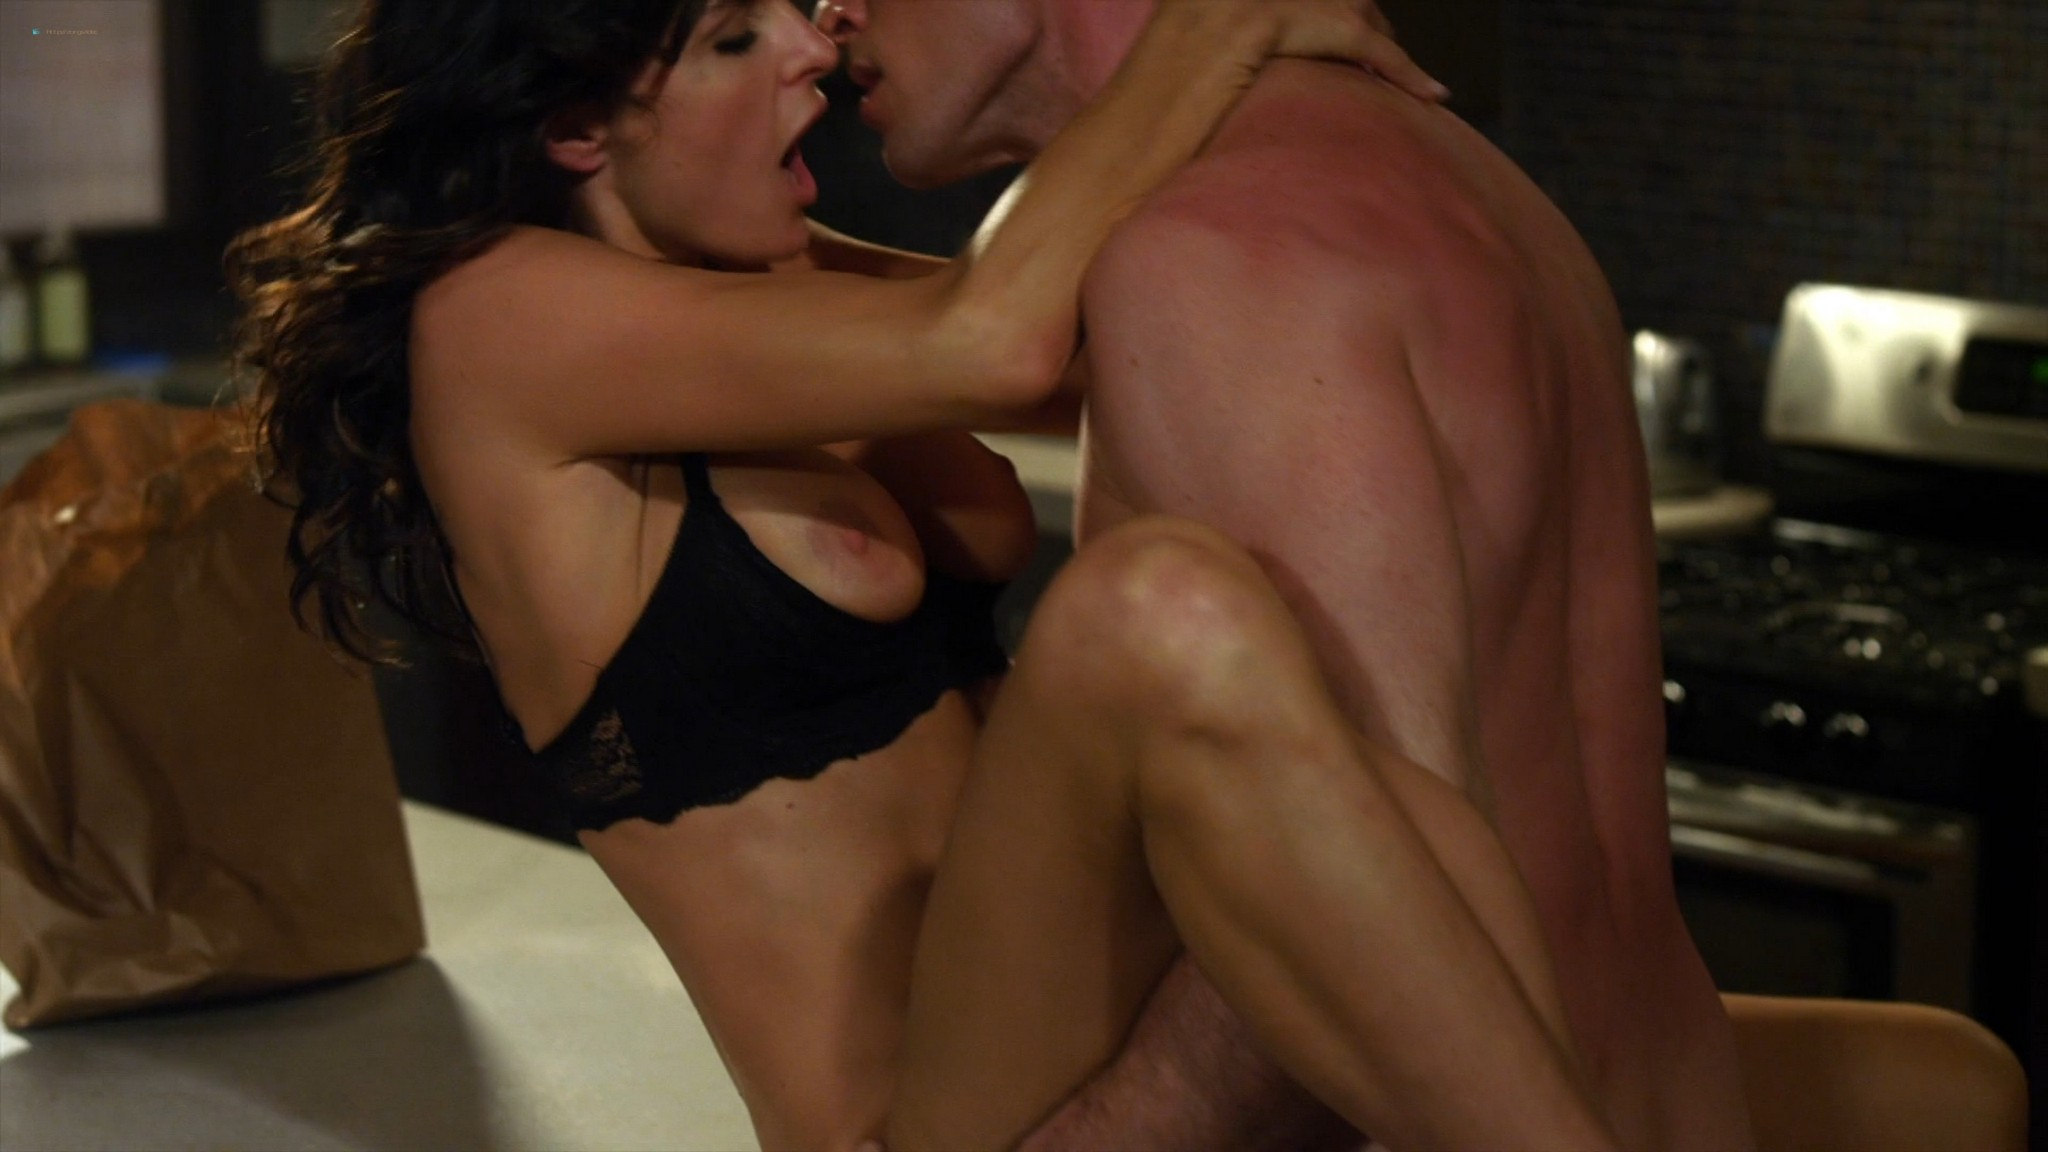 Ana Alexander nude sex , Kiara Diane, Aiden Ashley, and other nude Chemistry s1e3 (2011) HD 1080p (5)